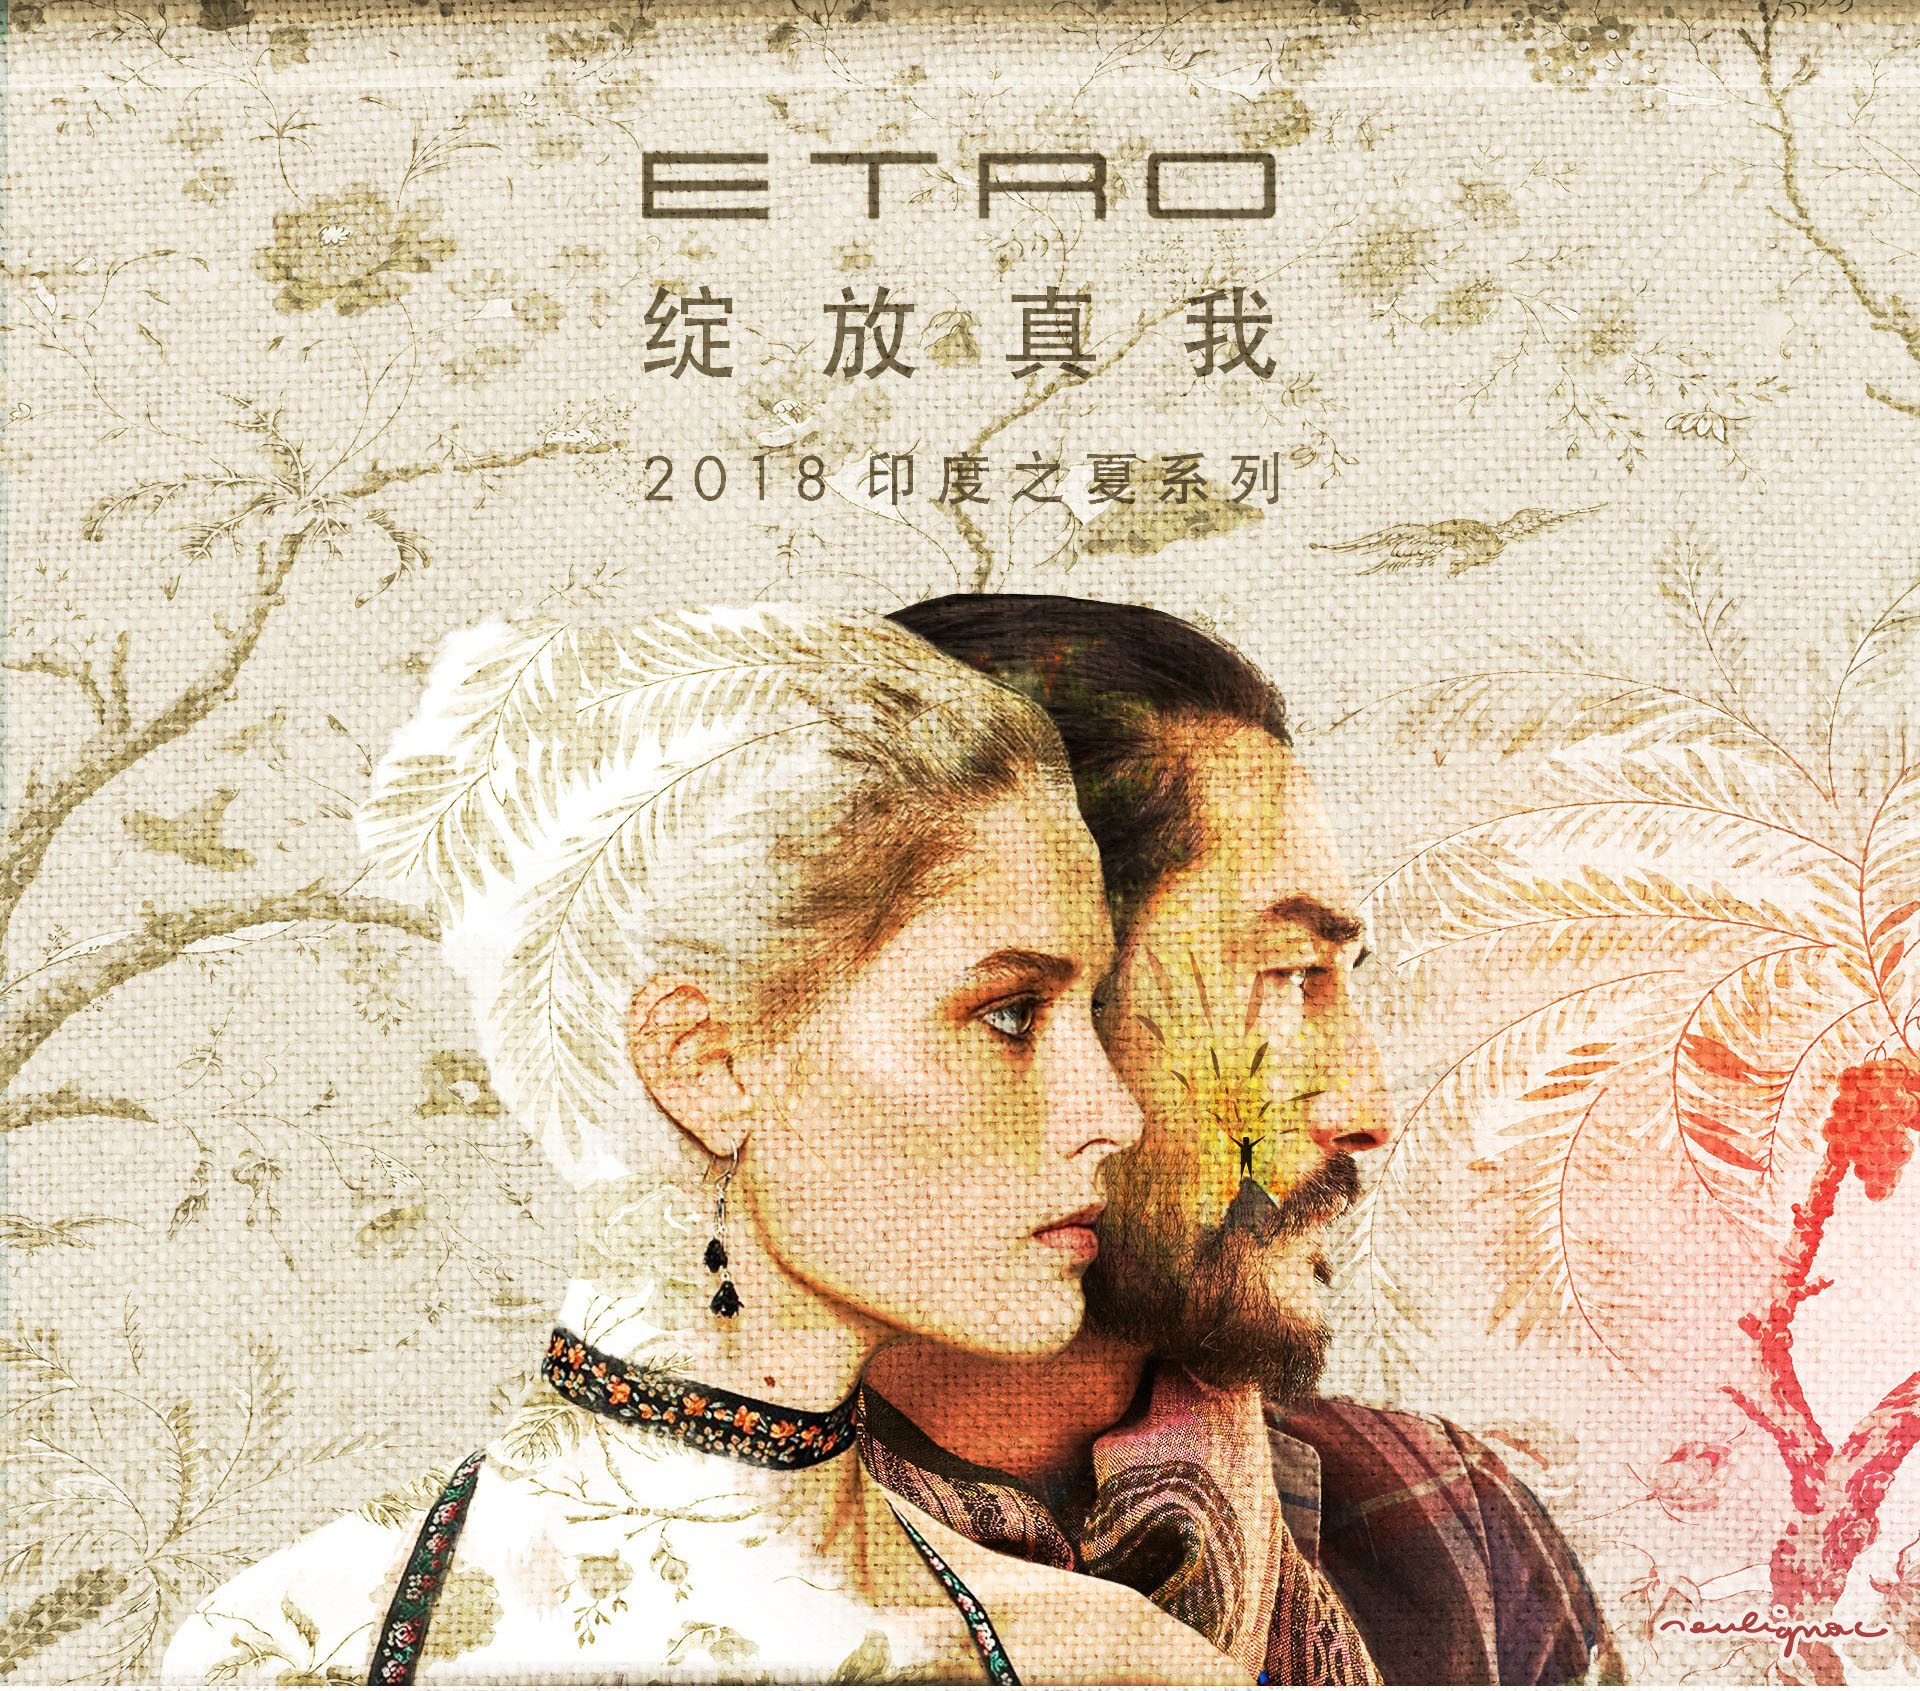 Etro China - Digital Summer Campaign, Key visual mockup by Francois Soulignac - Digital Creative & Art Direction - MADJOR Labbrand Shanghai, China